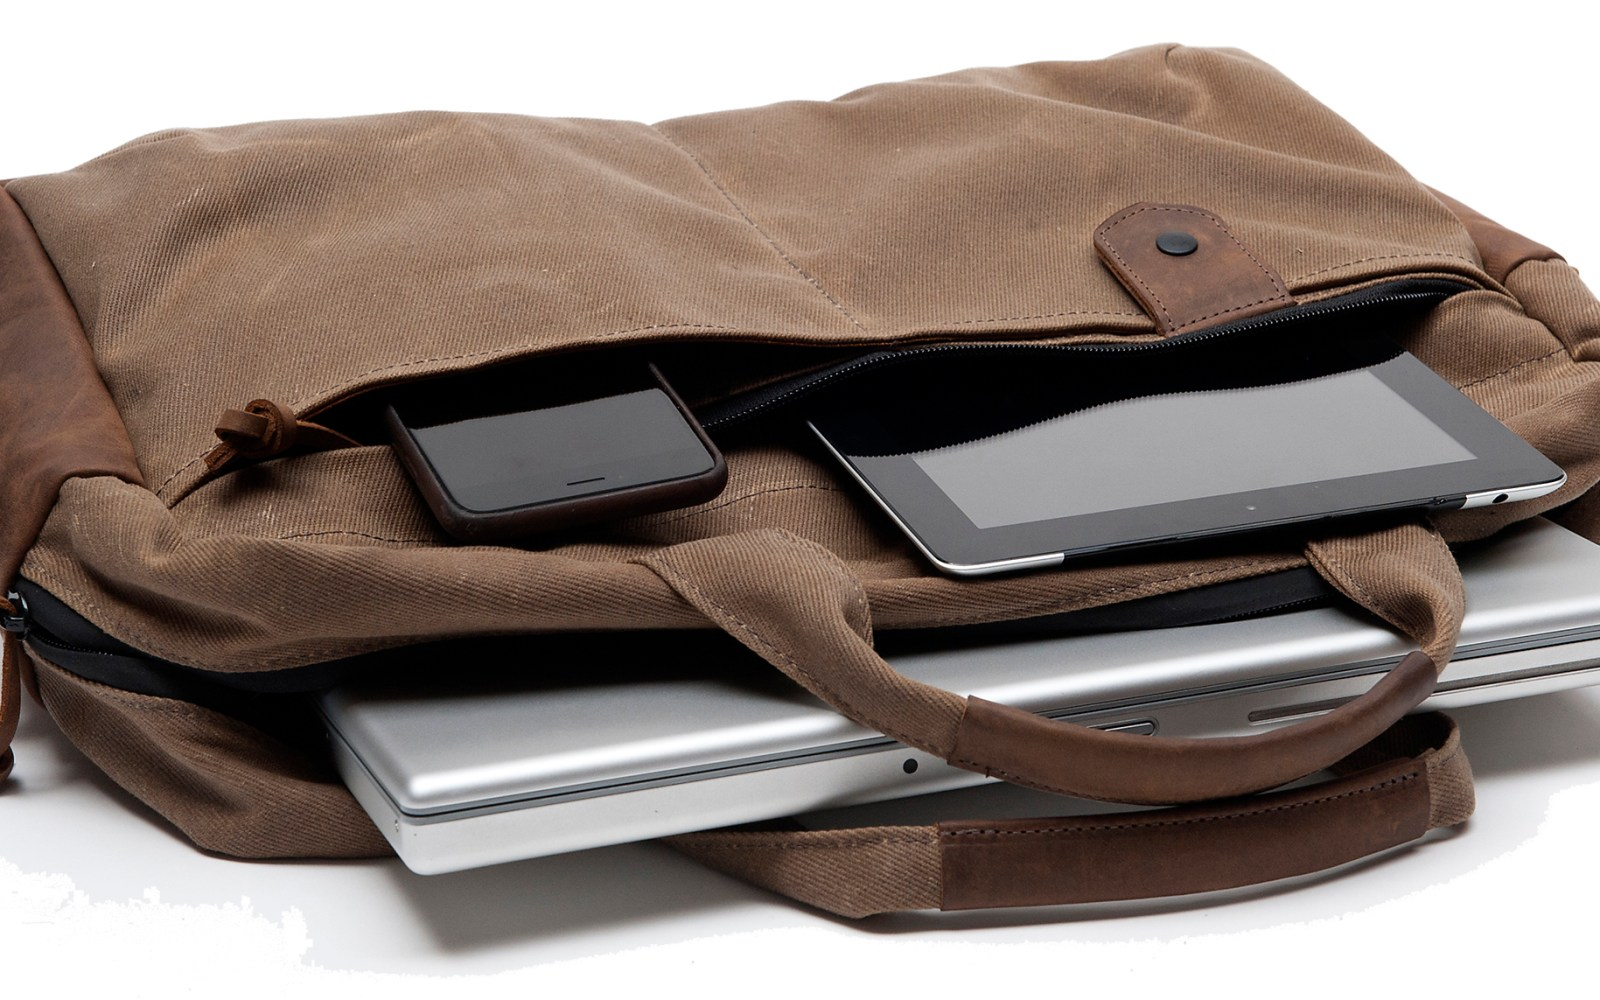 WaterField Designs has a spot for all of your tech in its new Made in America Bolt Briefcase